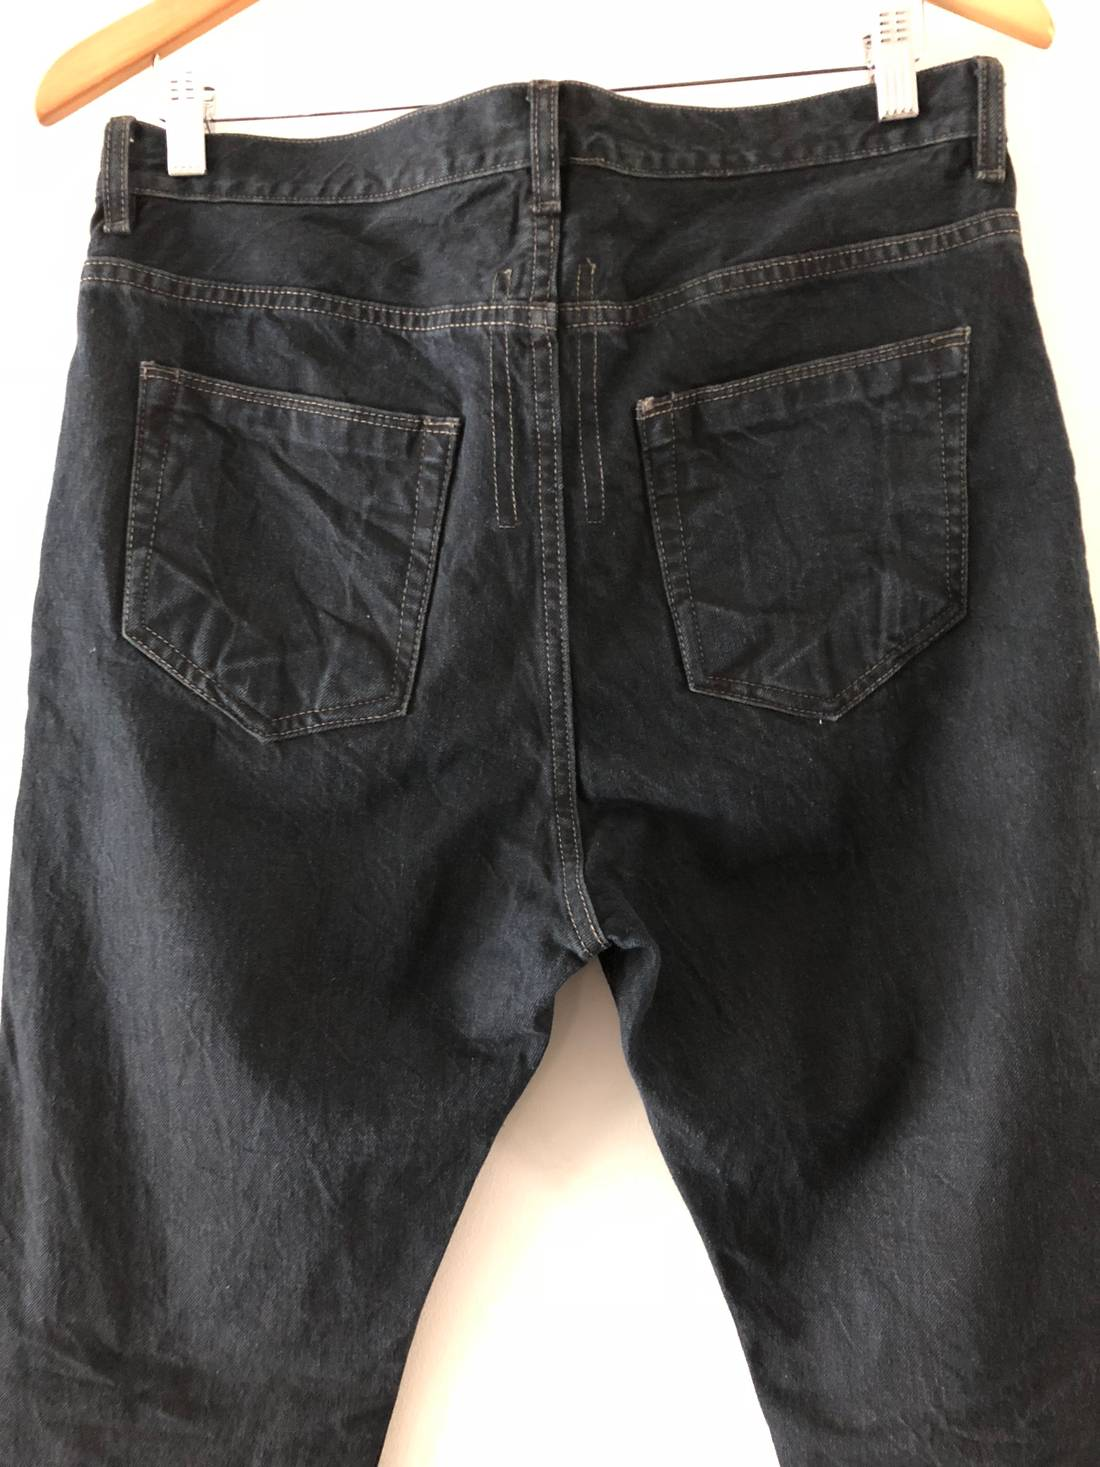 Rick Owens Drkshdw New With Tag Berlin Cut Blue Black Jeans Size 32 Us